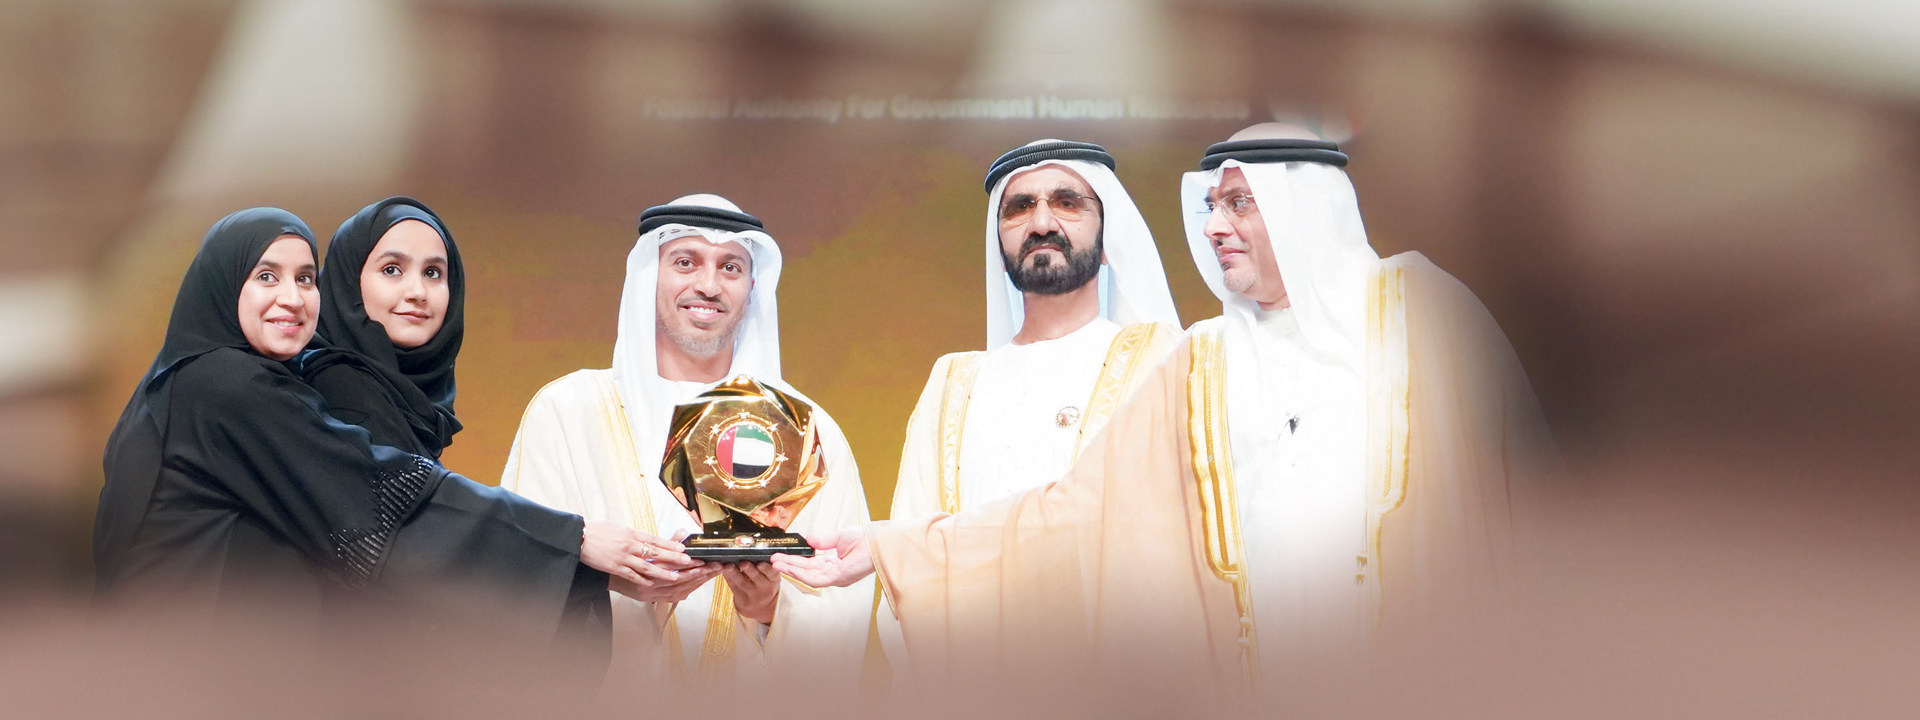 FAHR is awarded the Mohammed bin Rashid Award for Excellence in Government Performance - for the best category in the field of potentials